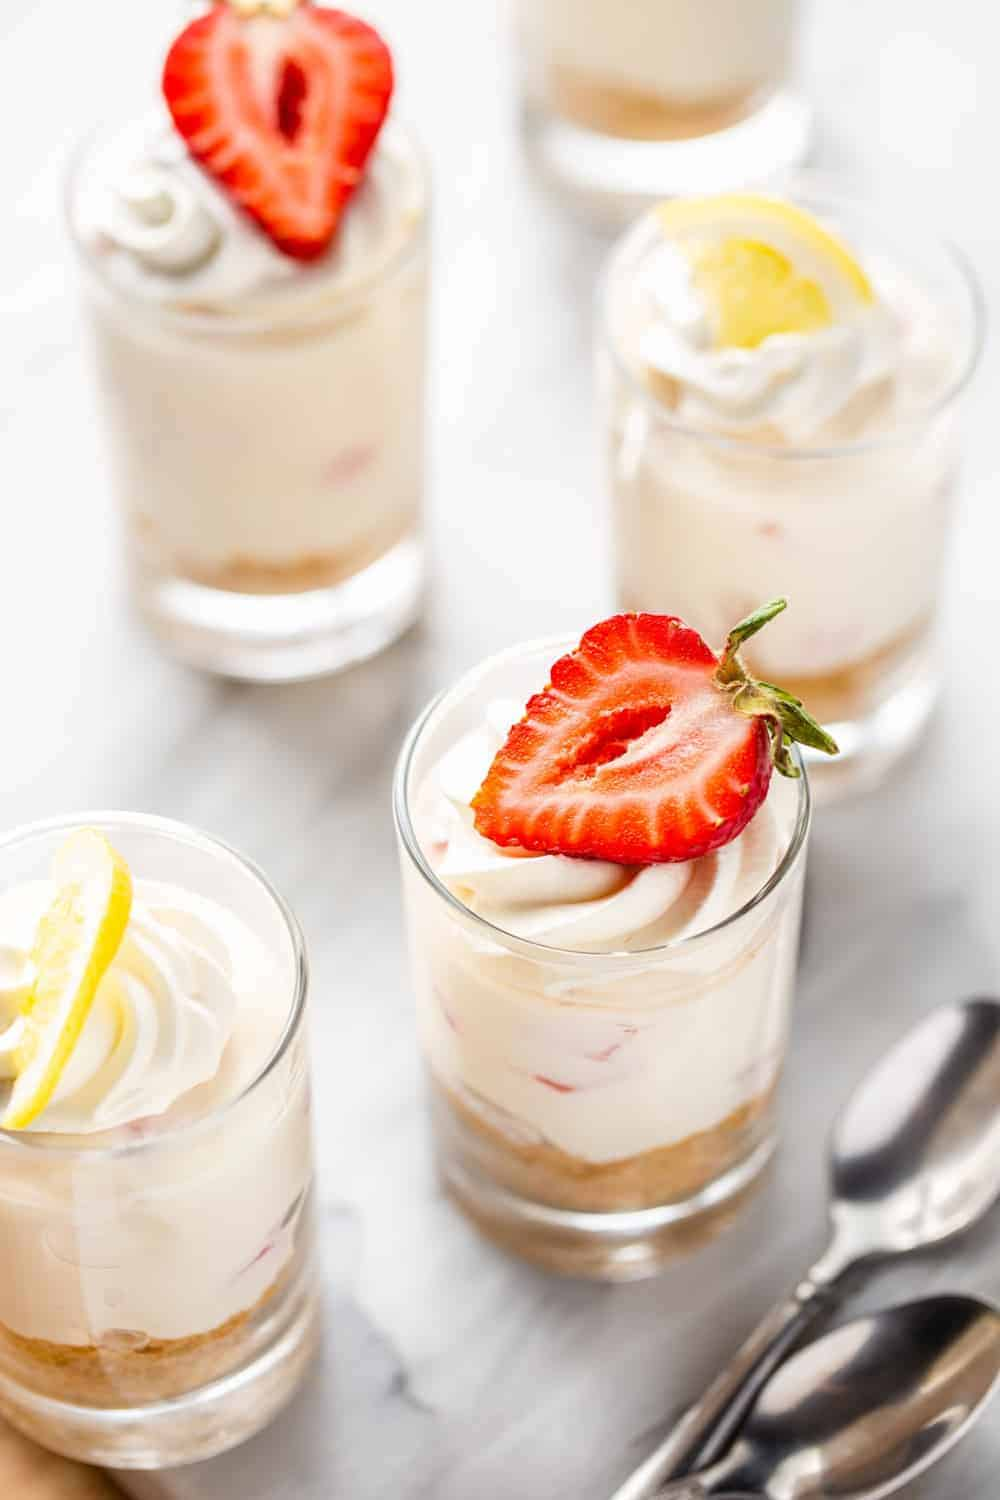 Mini no-bake strawberry lemonade cheesecakes in shot glasses, topped with whipped cream and a mixture of lemons and strawberries